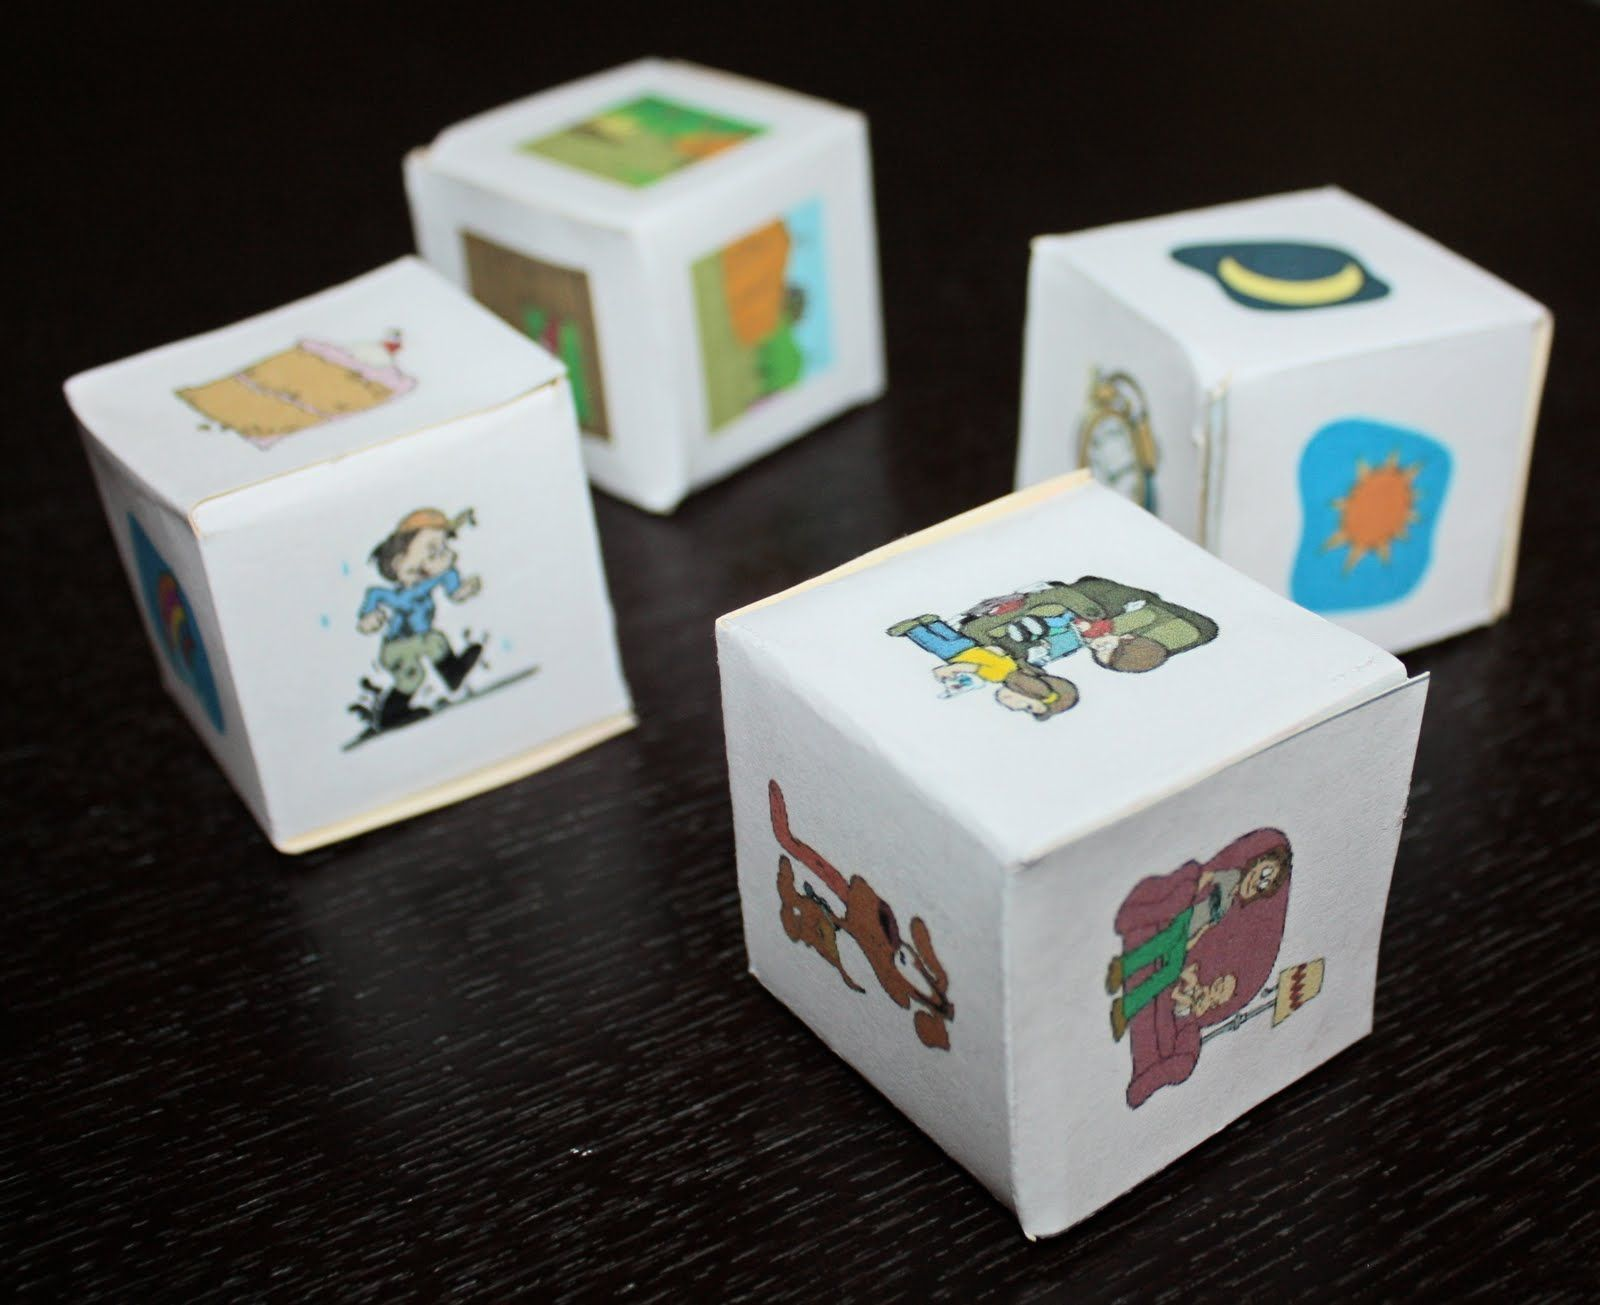 Inspiration Surrounds... Creativity Abounds: Storytelling Dice (Plus A Link to Make Your Own)